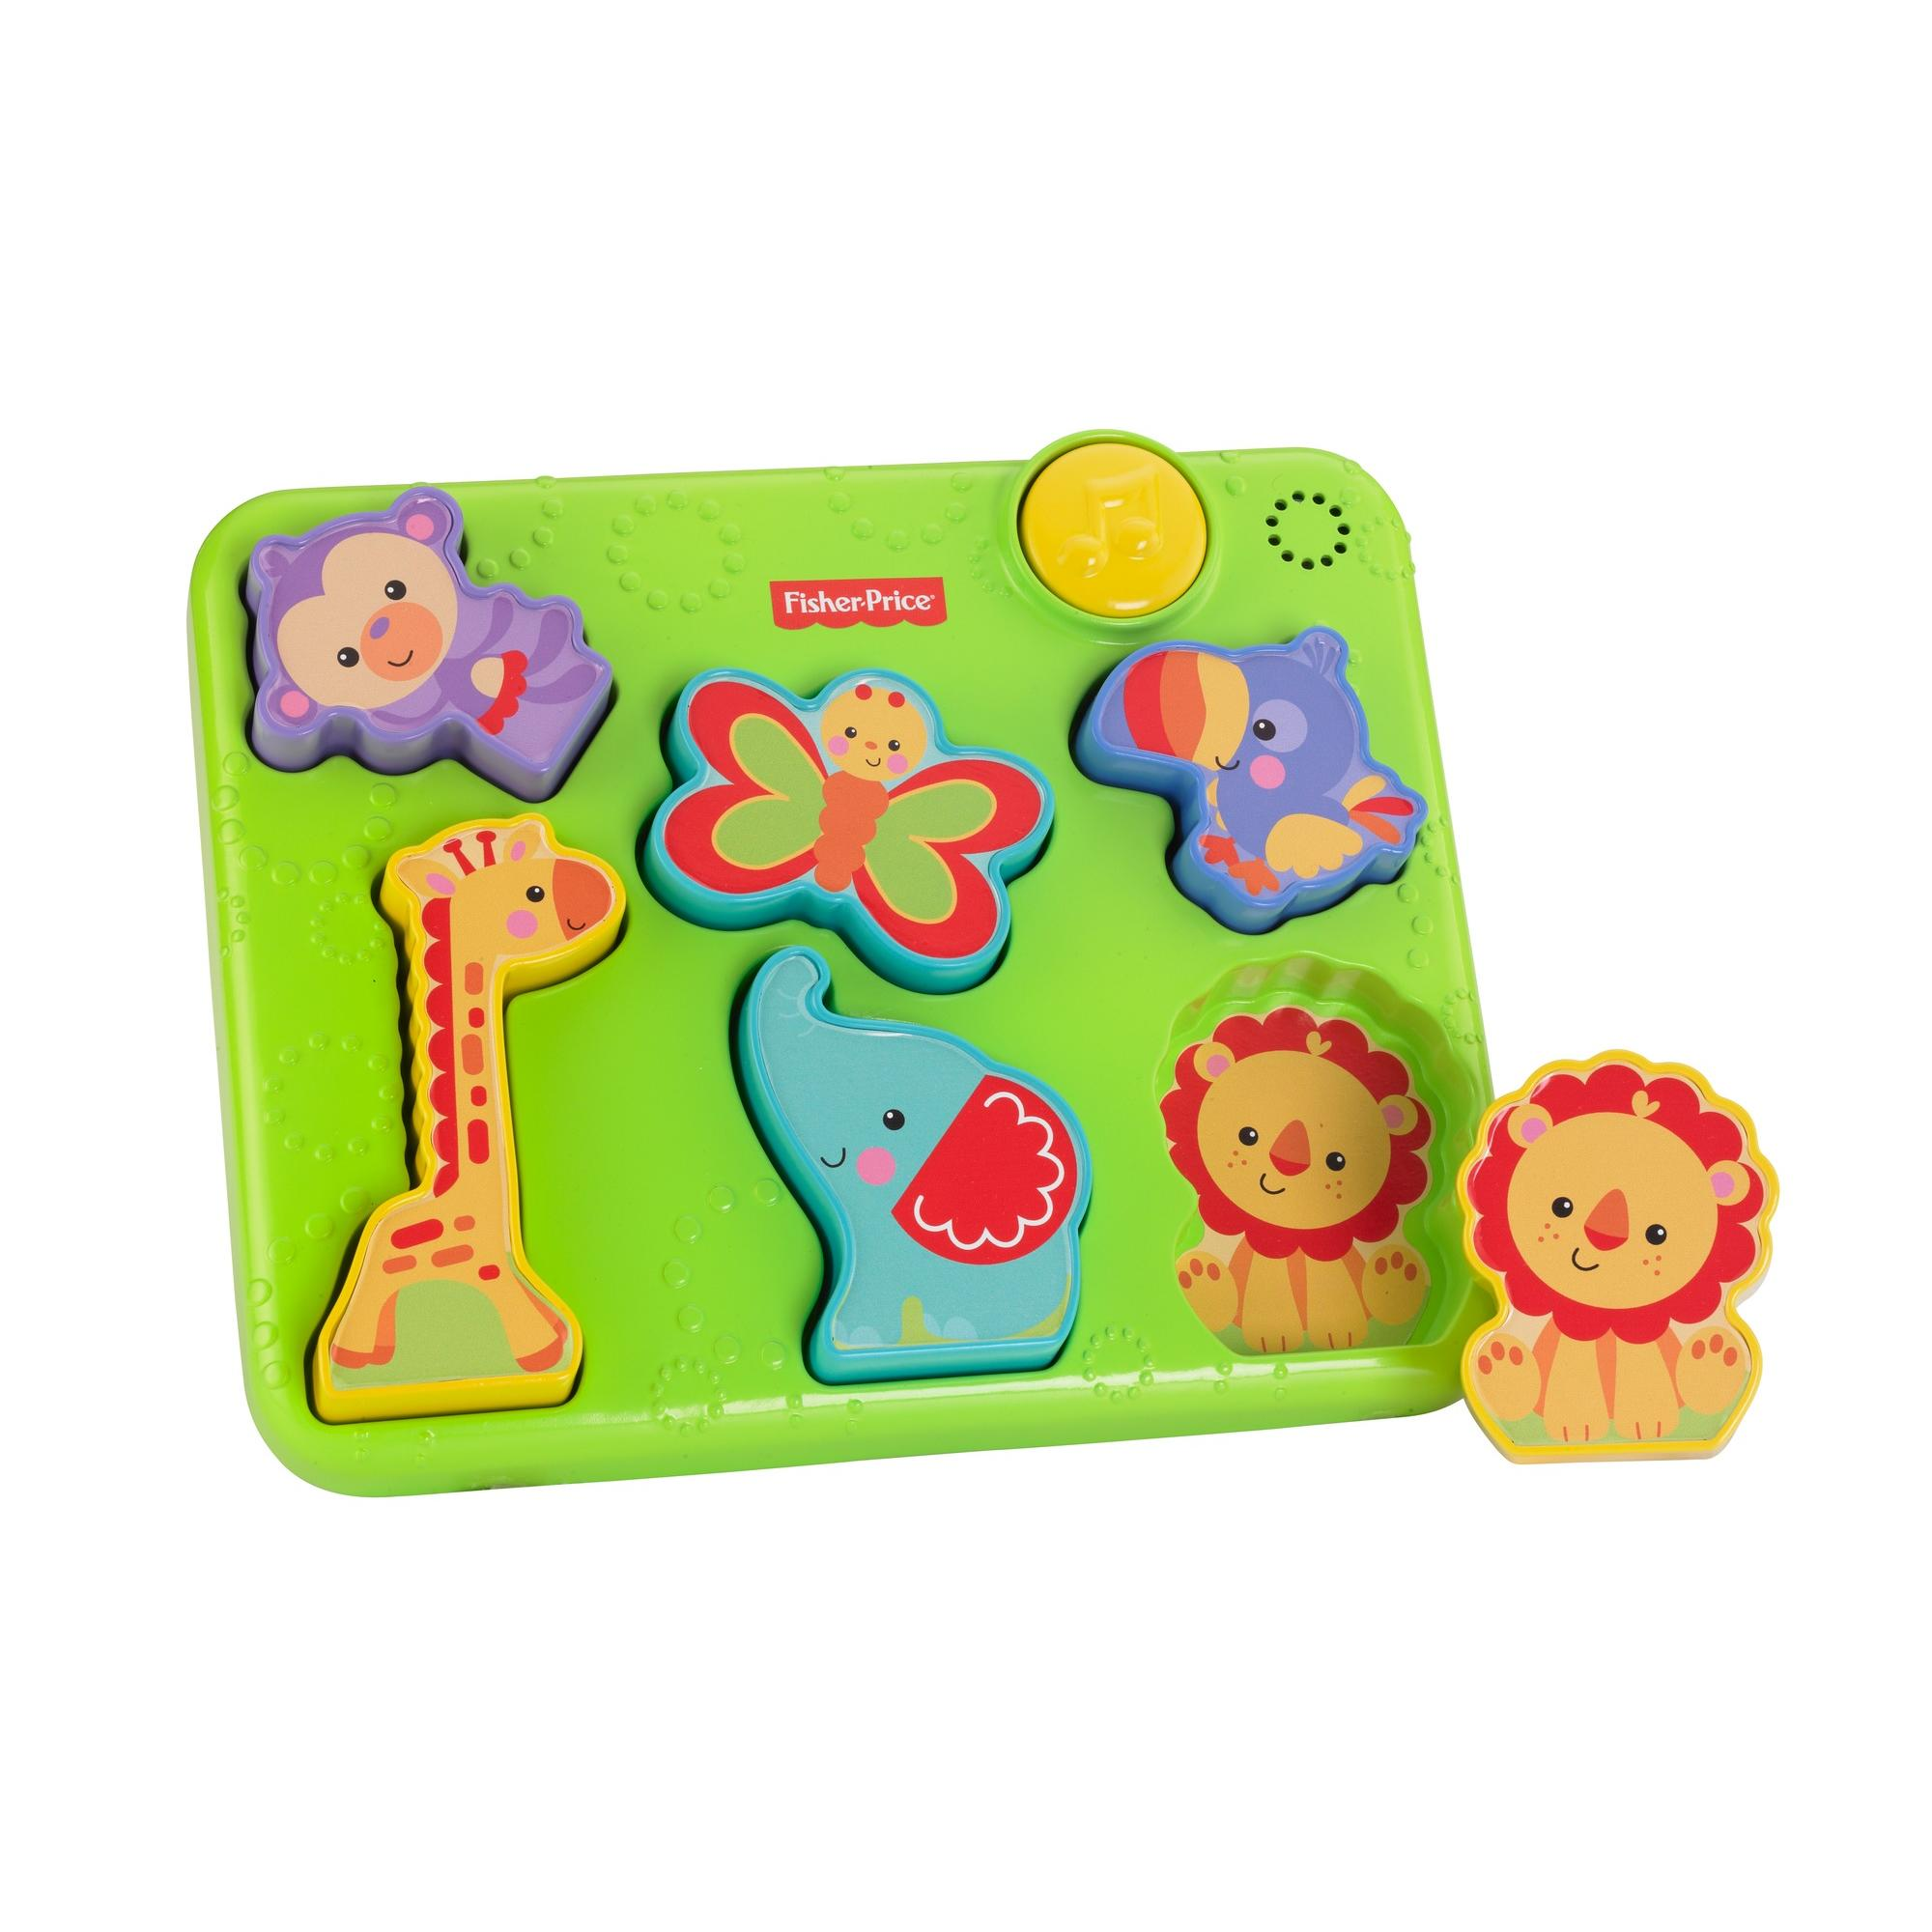 Fisher-Price Silly Sounds Animal Puzzle with Bright Colors & Music